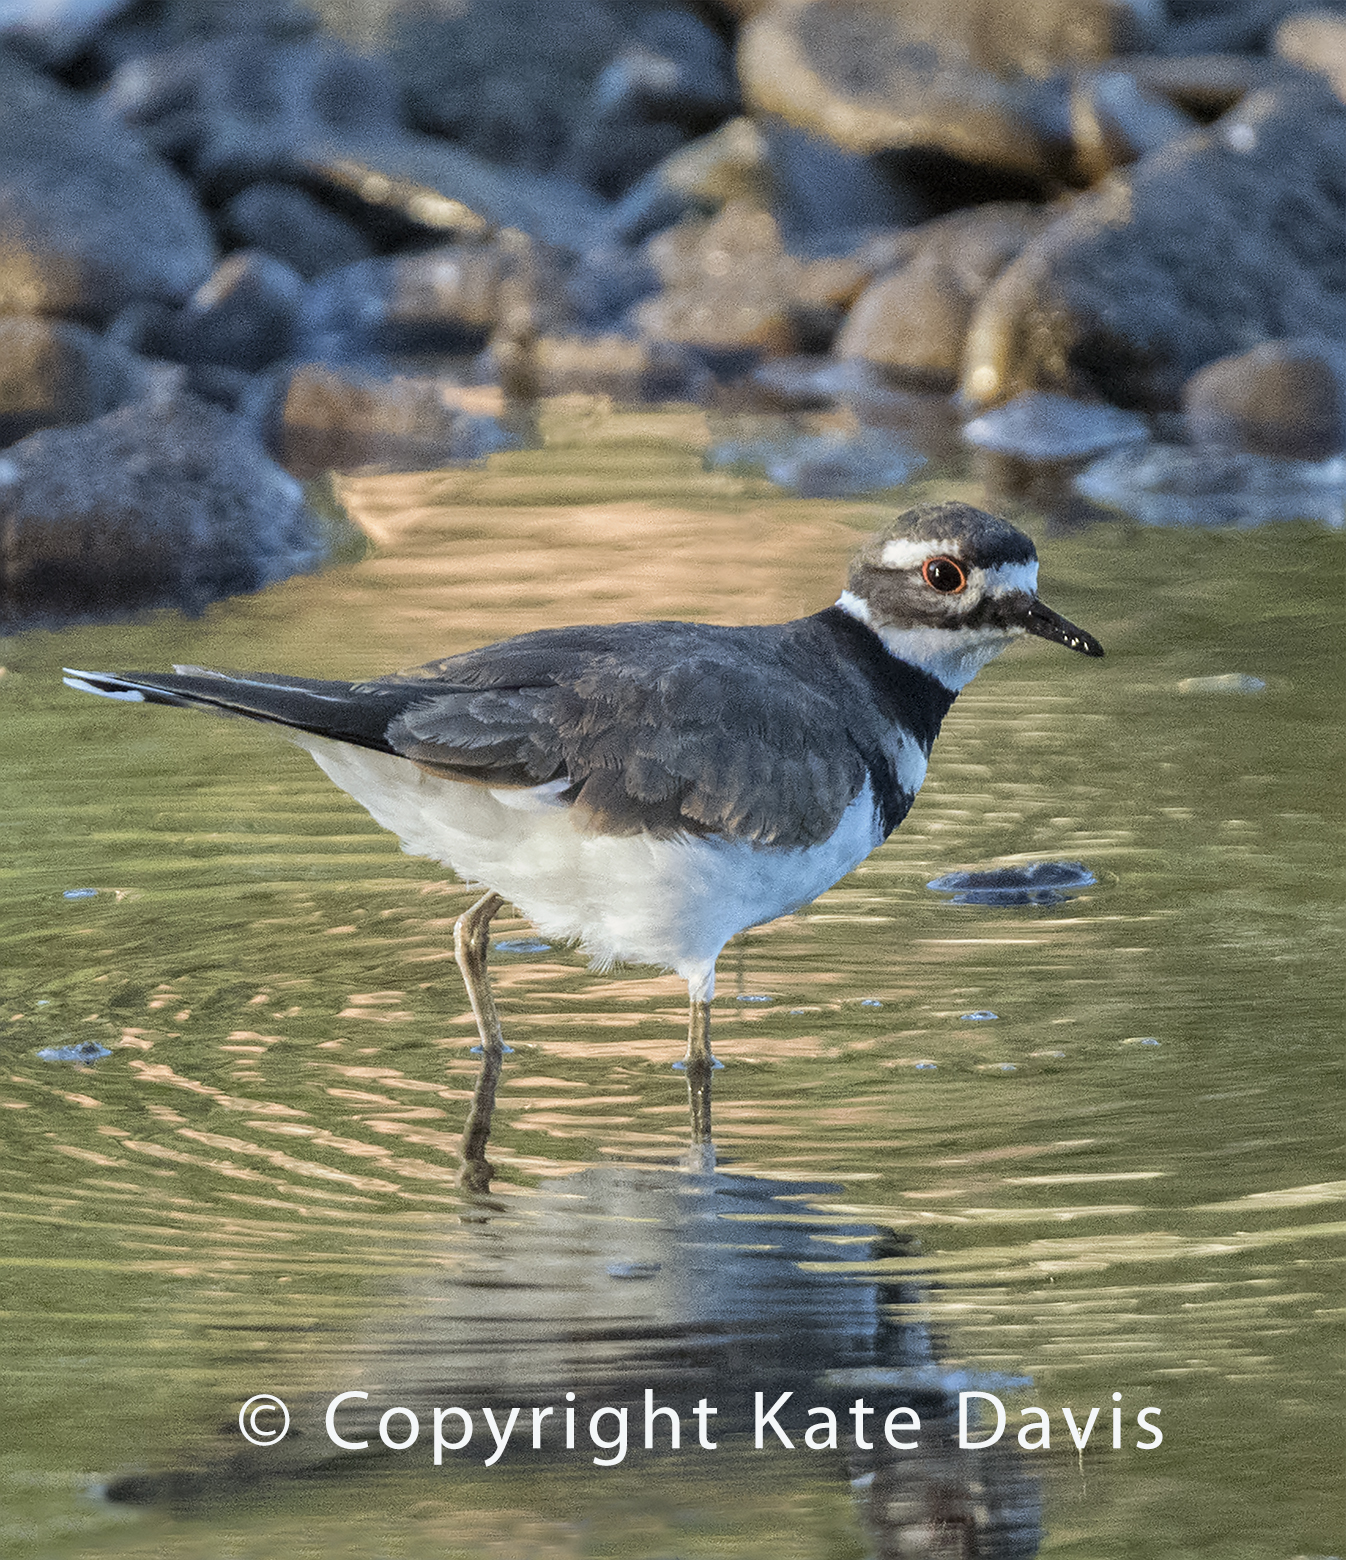 Killdeer In the Shallows